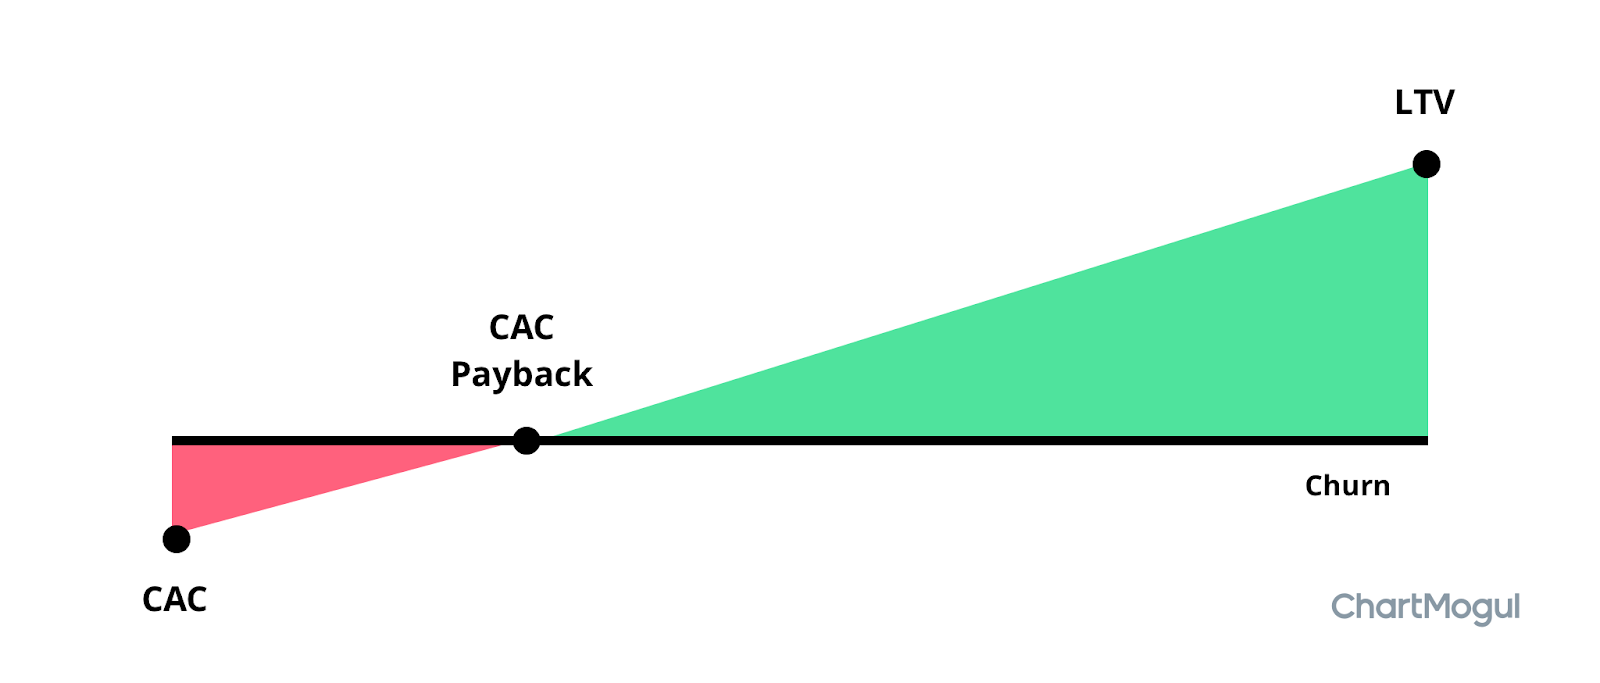 Most important SaaS metric: link between CAC and LTV